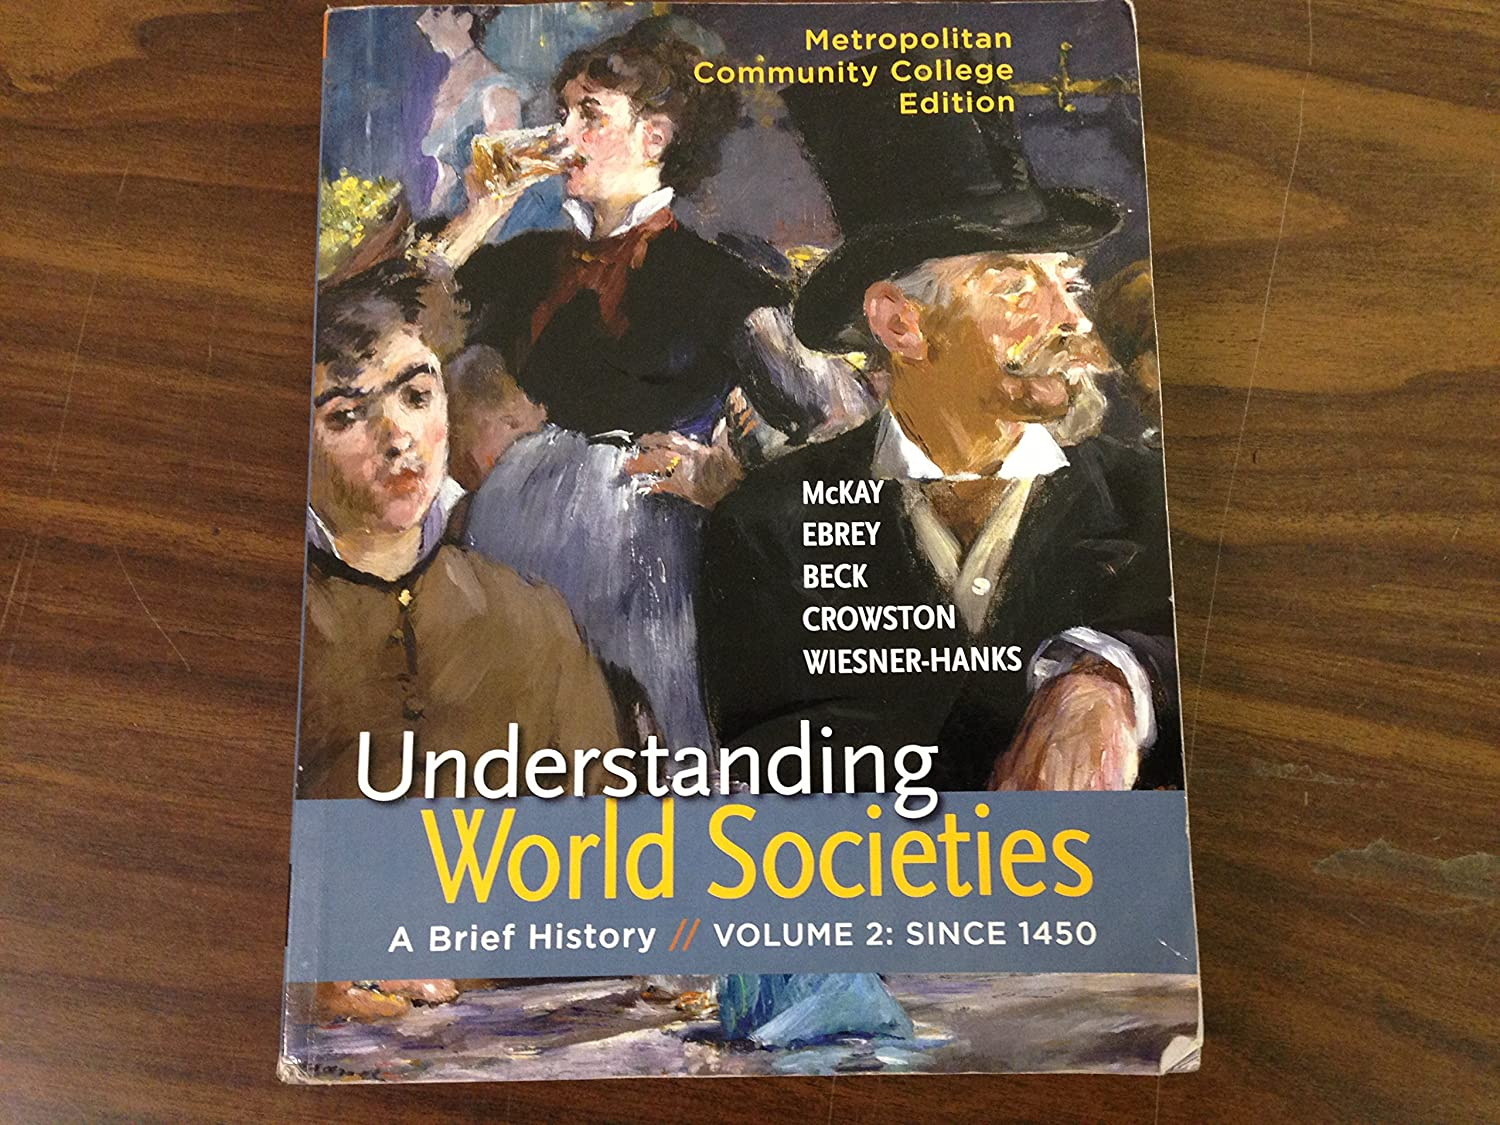 Amazon.com: Metropolitan Community College Edition, Uderstanding World  Societies, A Breif History Volume 2 scince 1450: Health & Personal Care